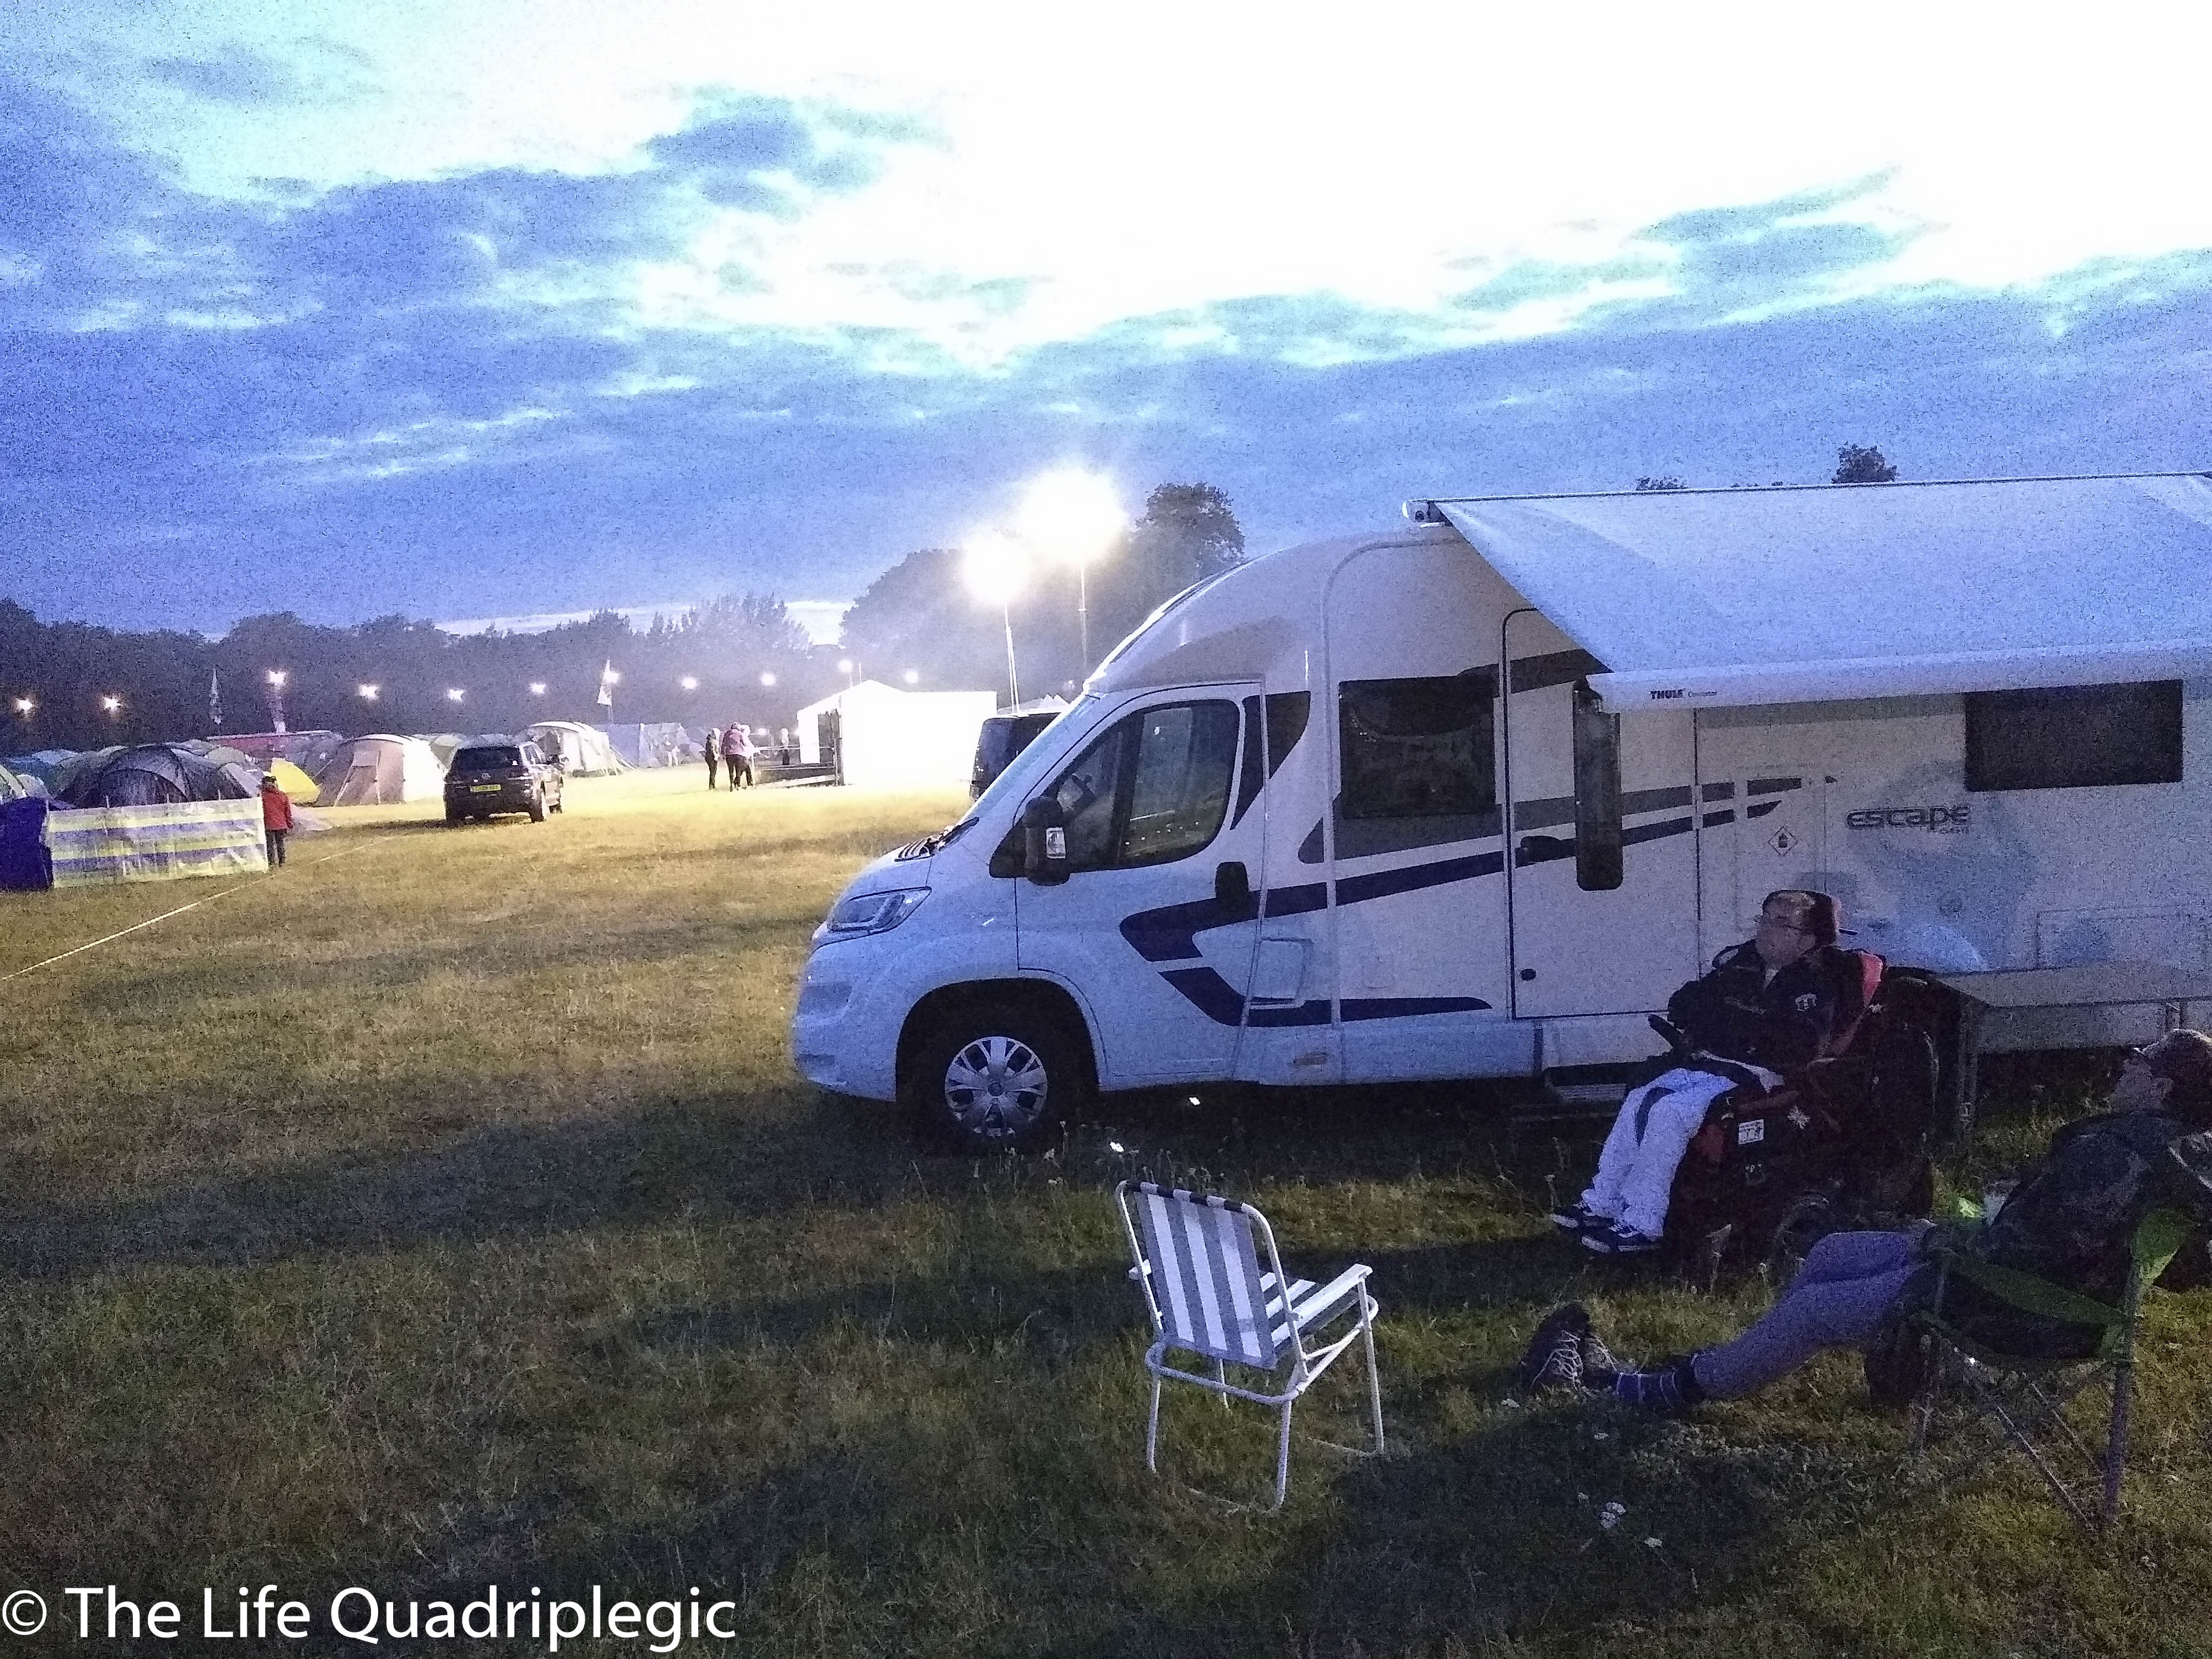 A side view of a motorhome with a young man in a powerchair sat next to it and another man in a camping chair